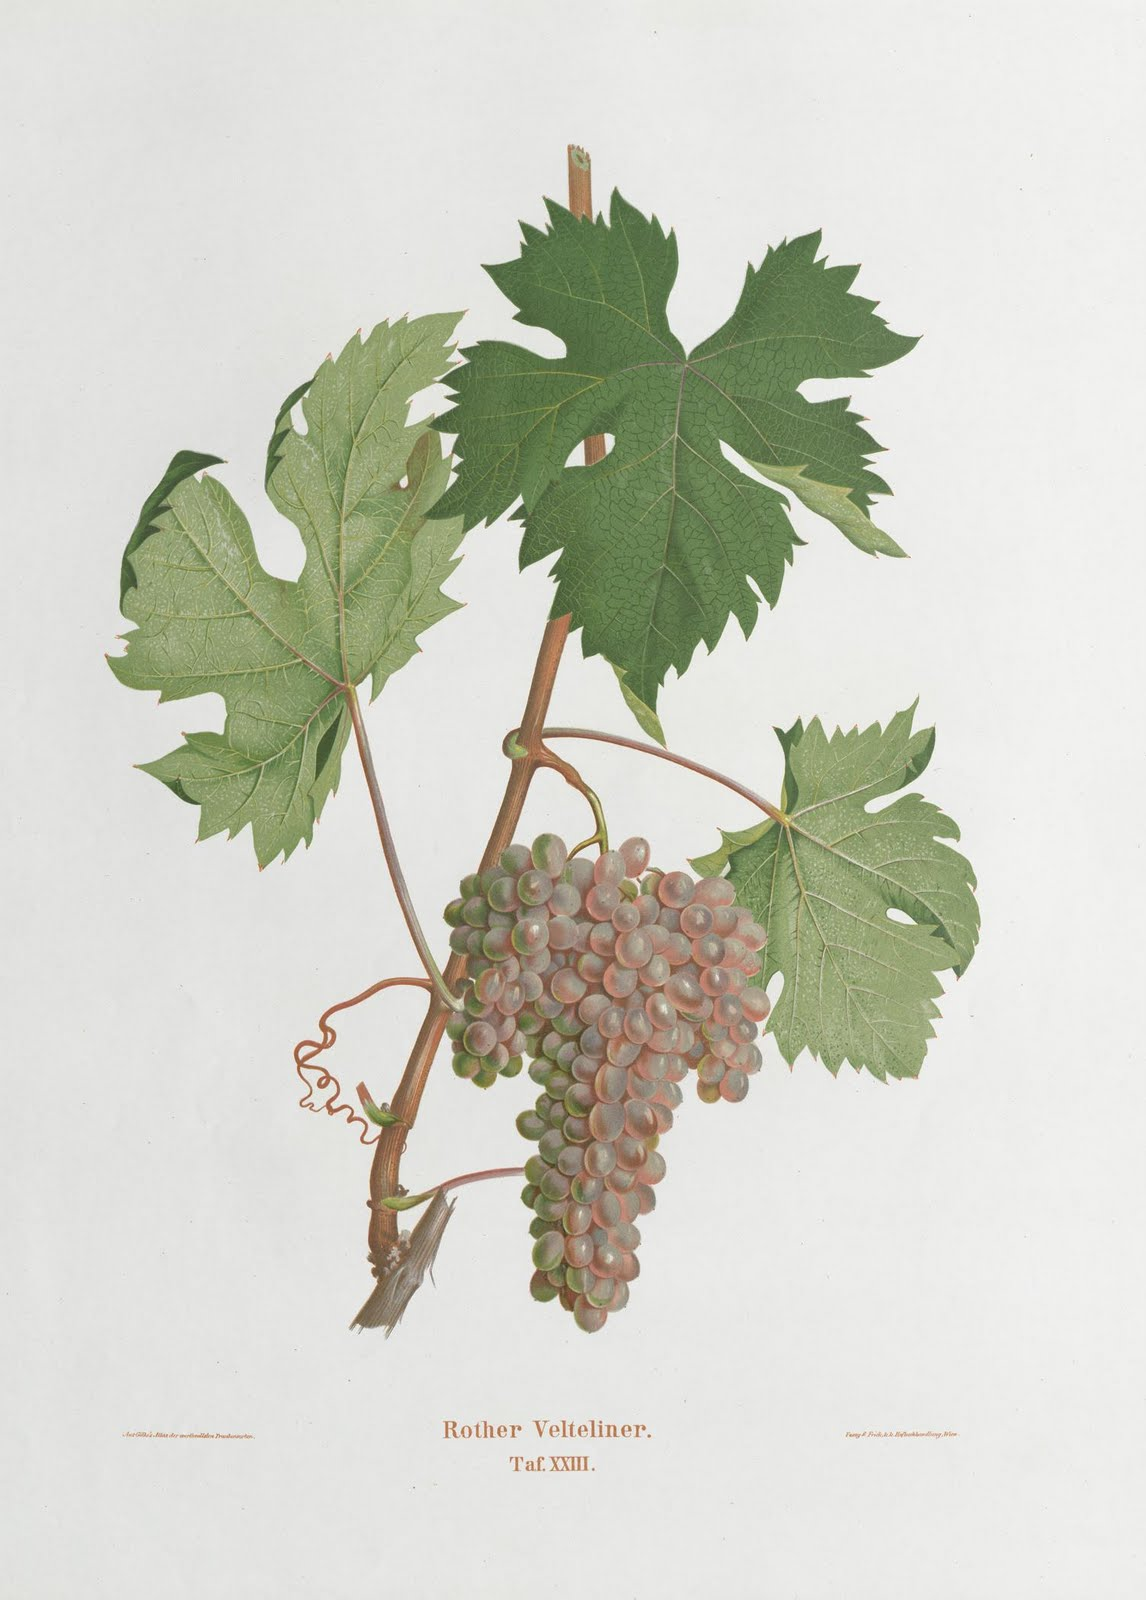 book illustration of bunch of grapes